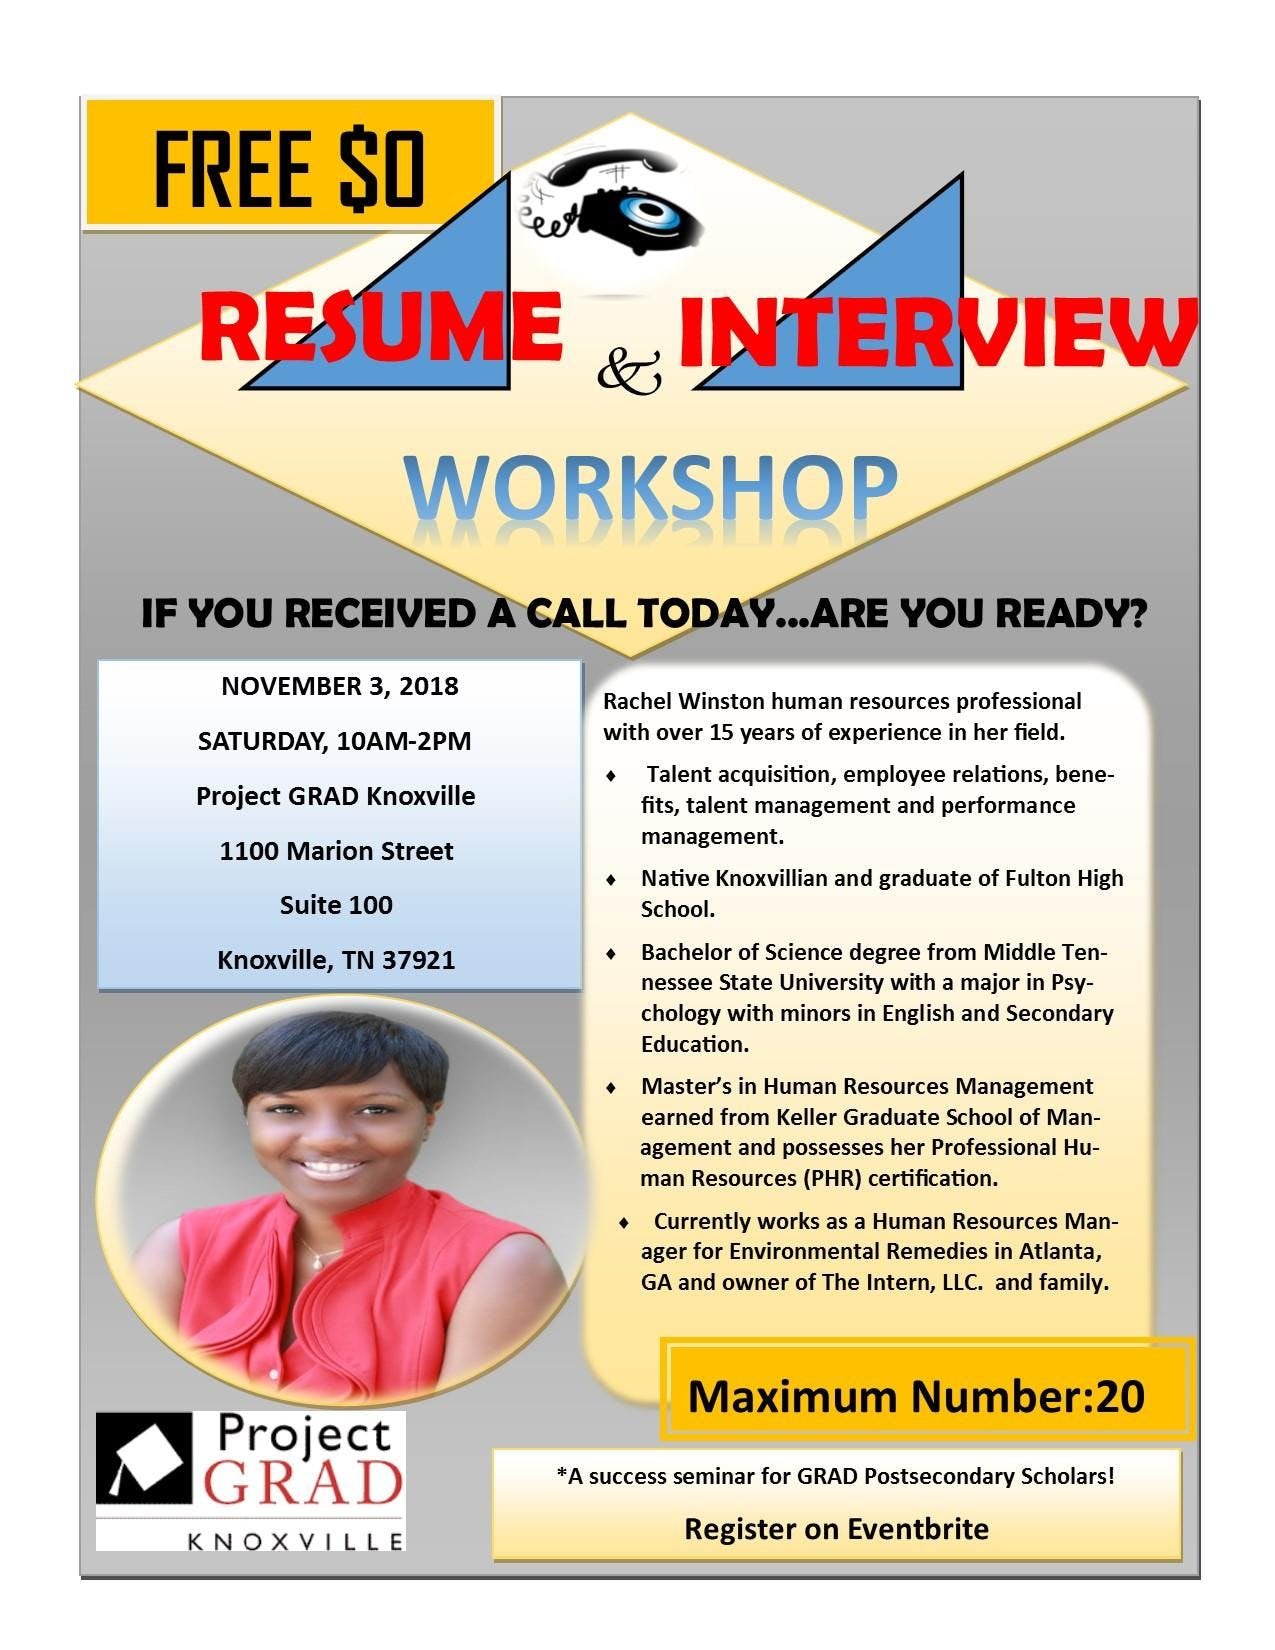 Project Grad Knoxville Resume Interview Workshop 3 Nov 2018